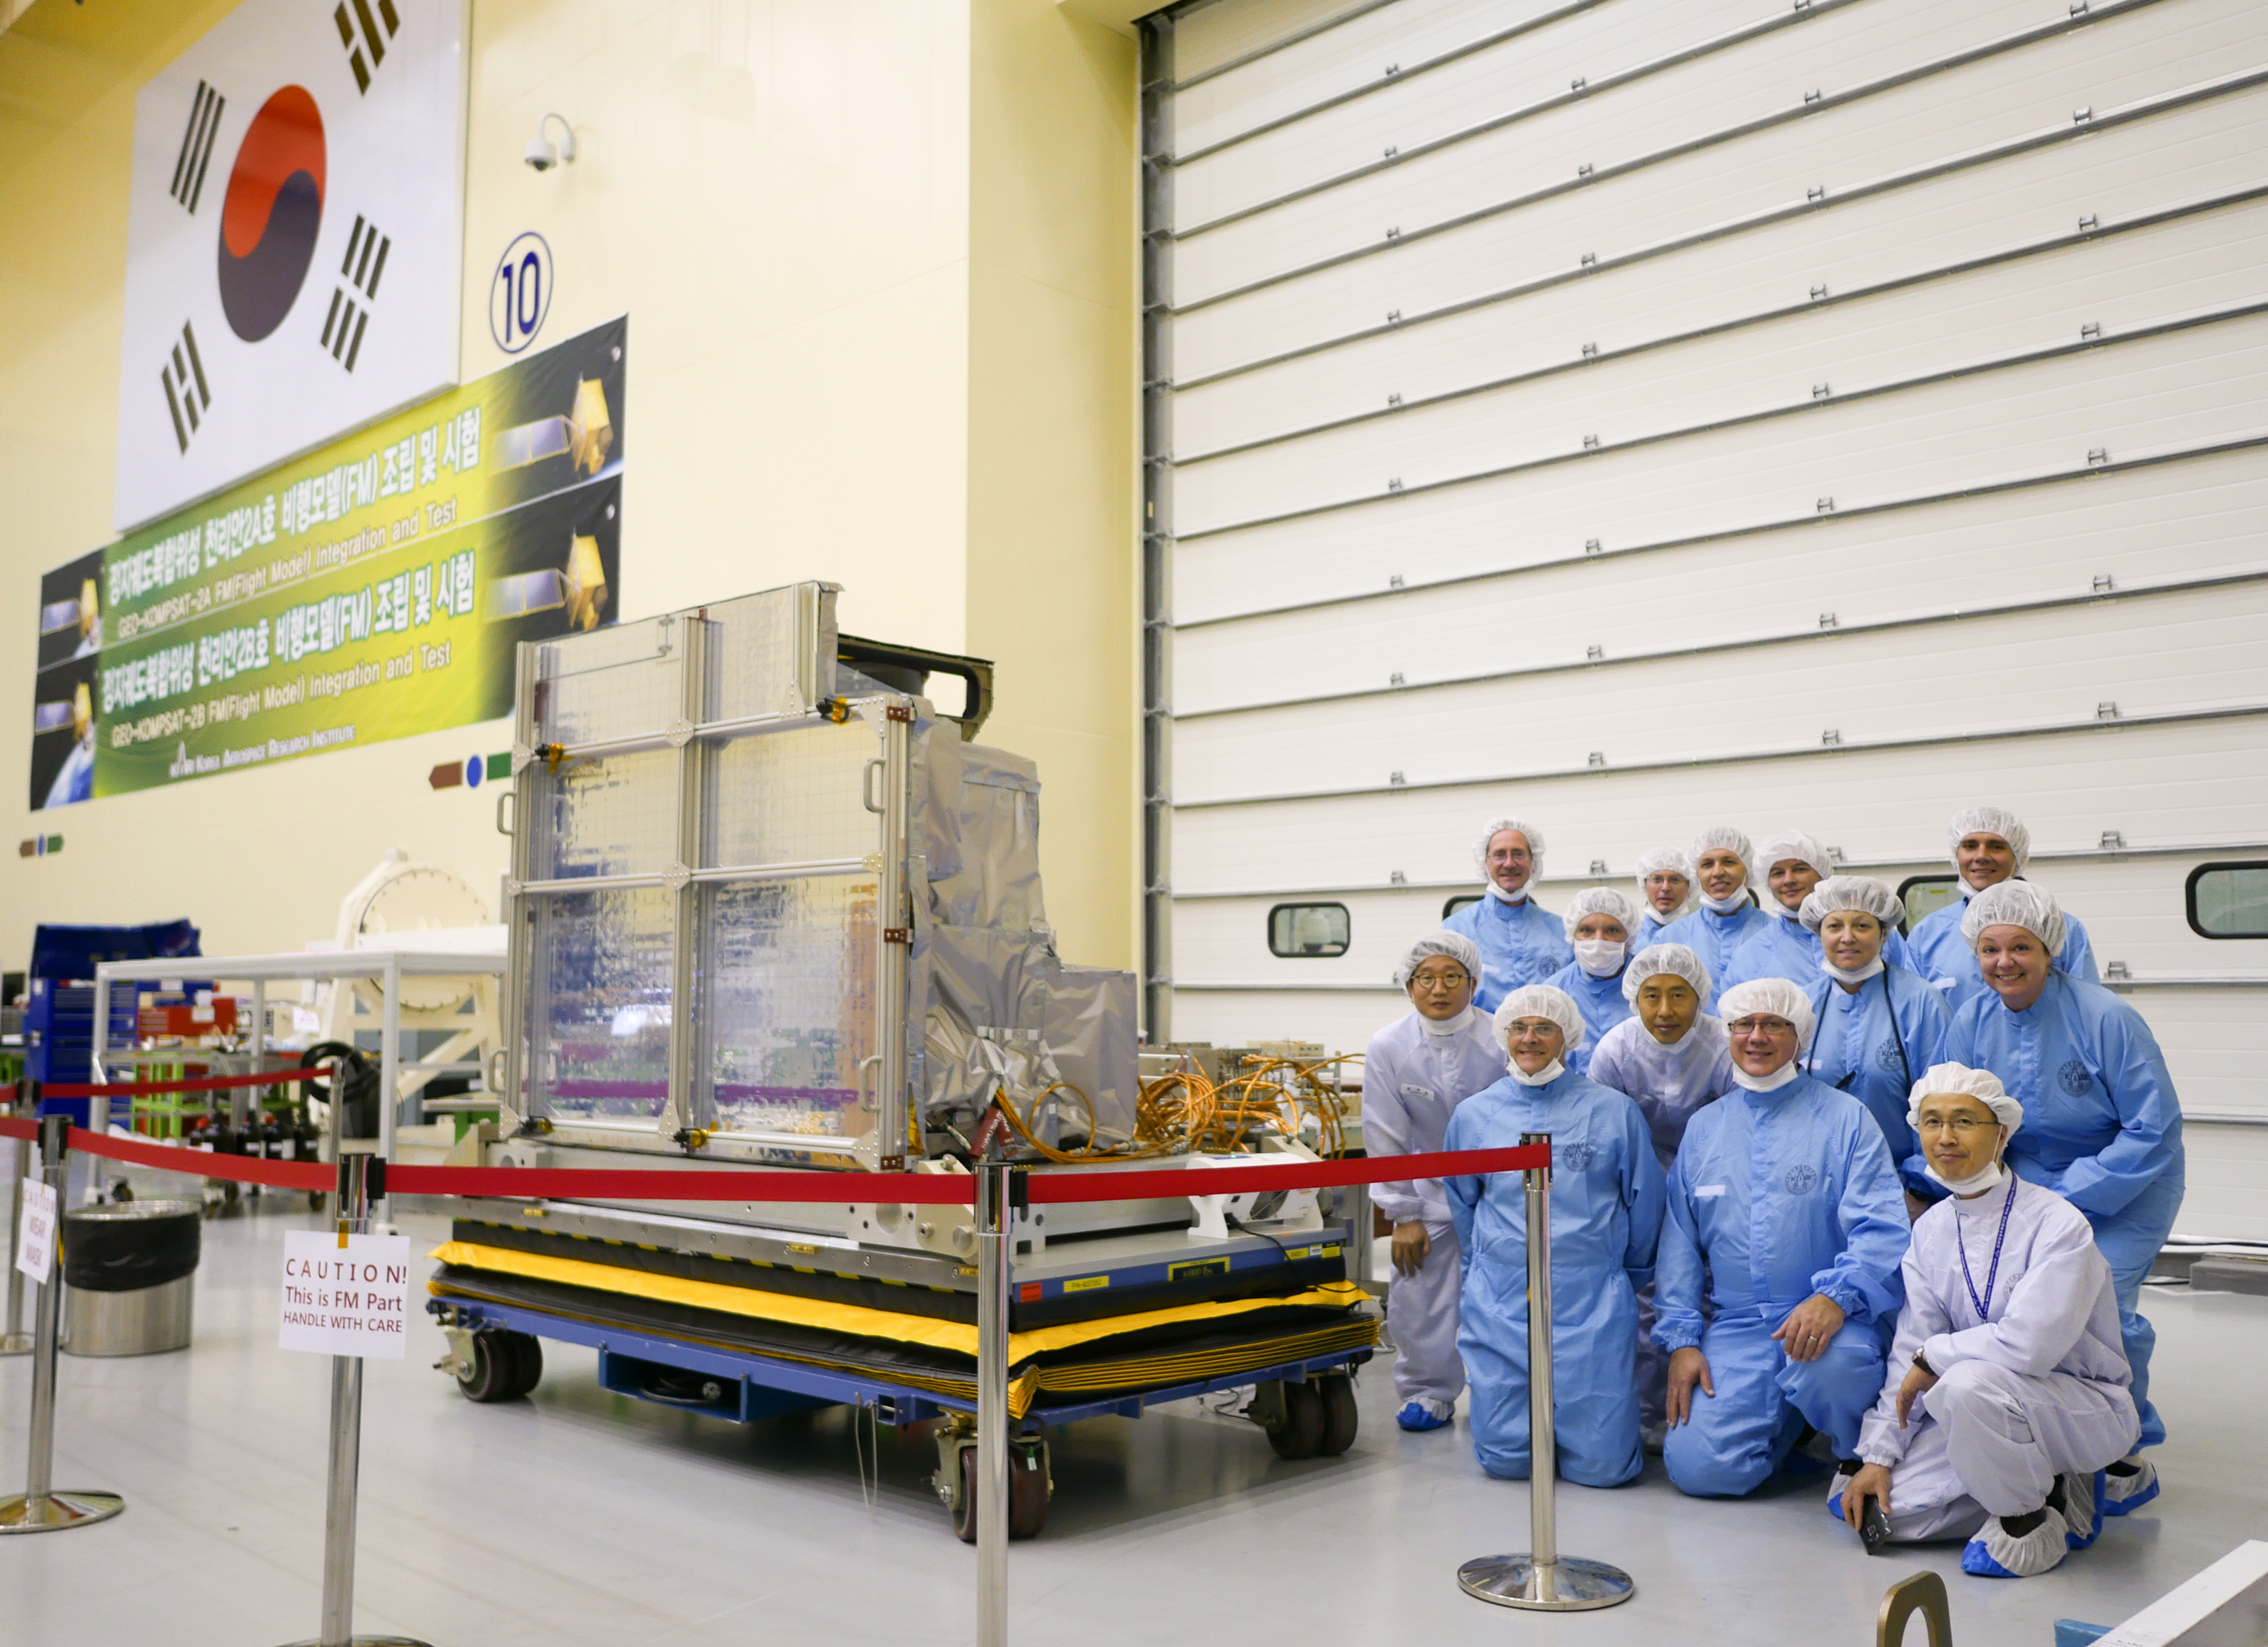 Korea Aerospace Research Institute (KARI) and Harris Corporation employees pose with the Advanced Meteorological Imager, which was built by Harris in Fort Wayne, Ind., and was recently delivered to KARI for integration into its newest weather satellite. (Photo: Business Wire)